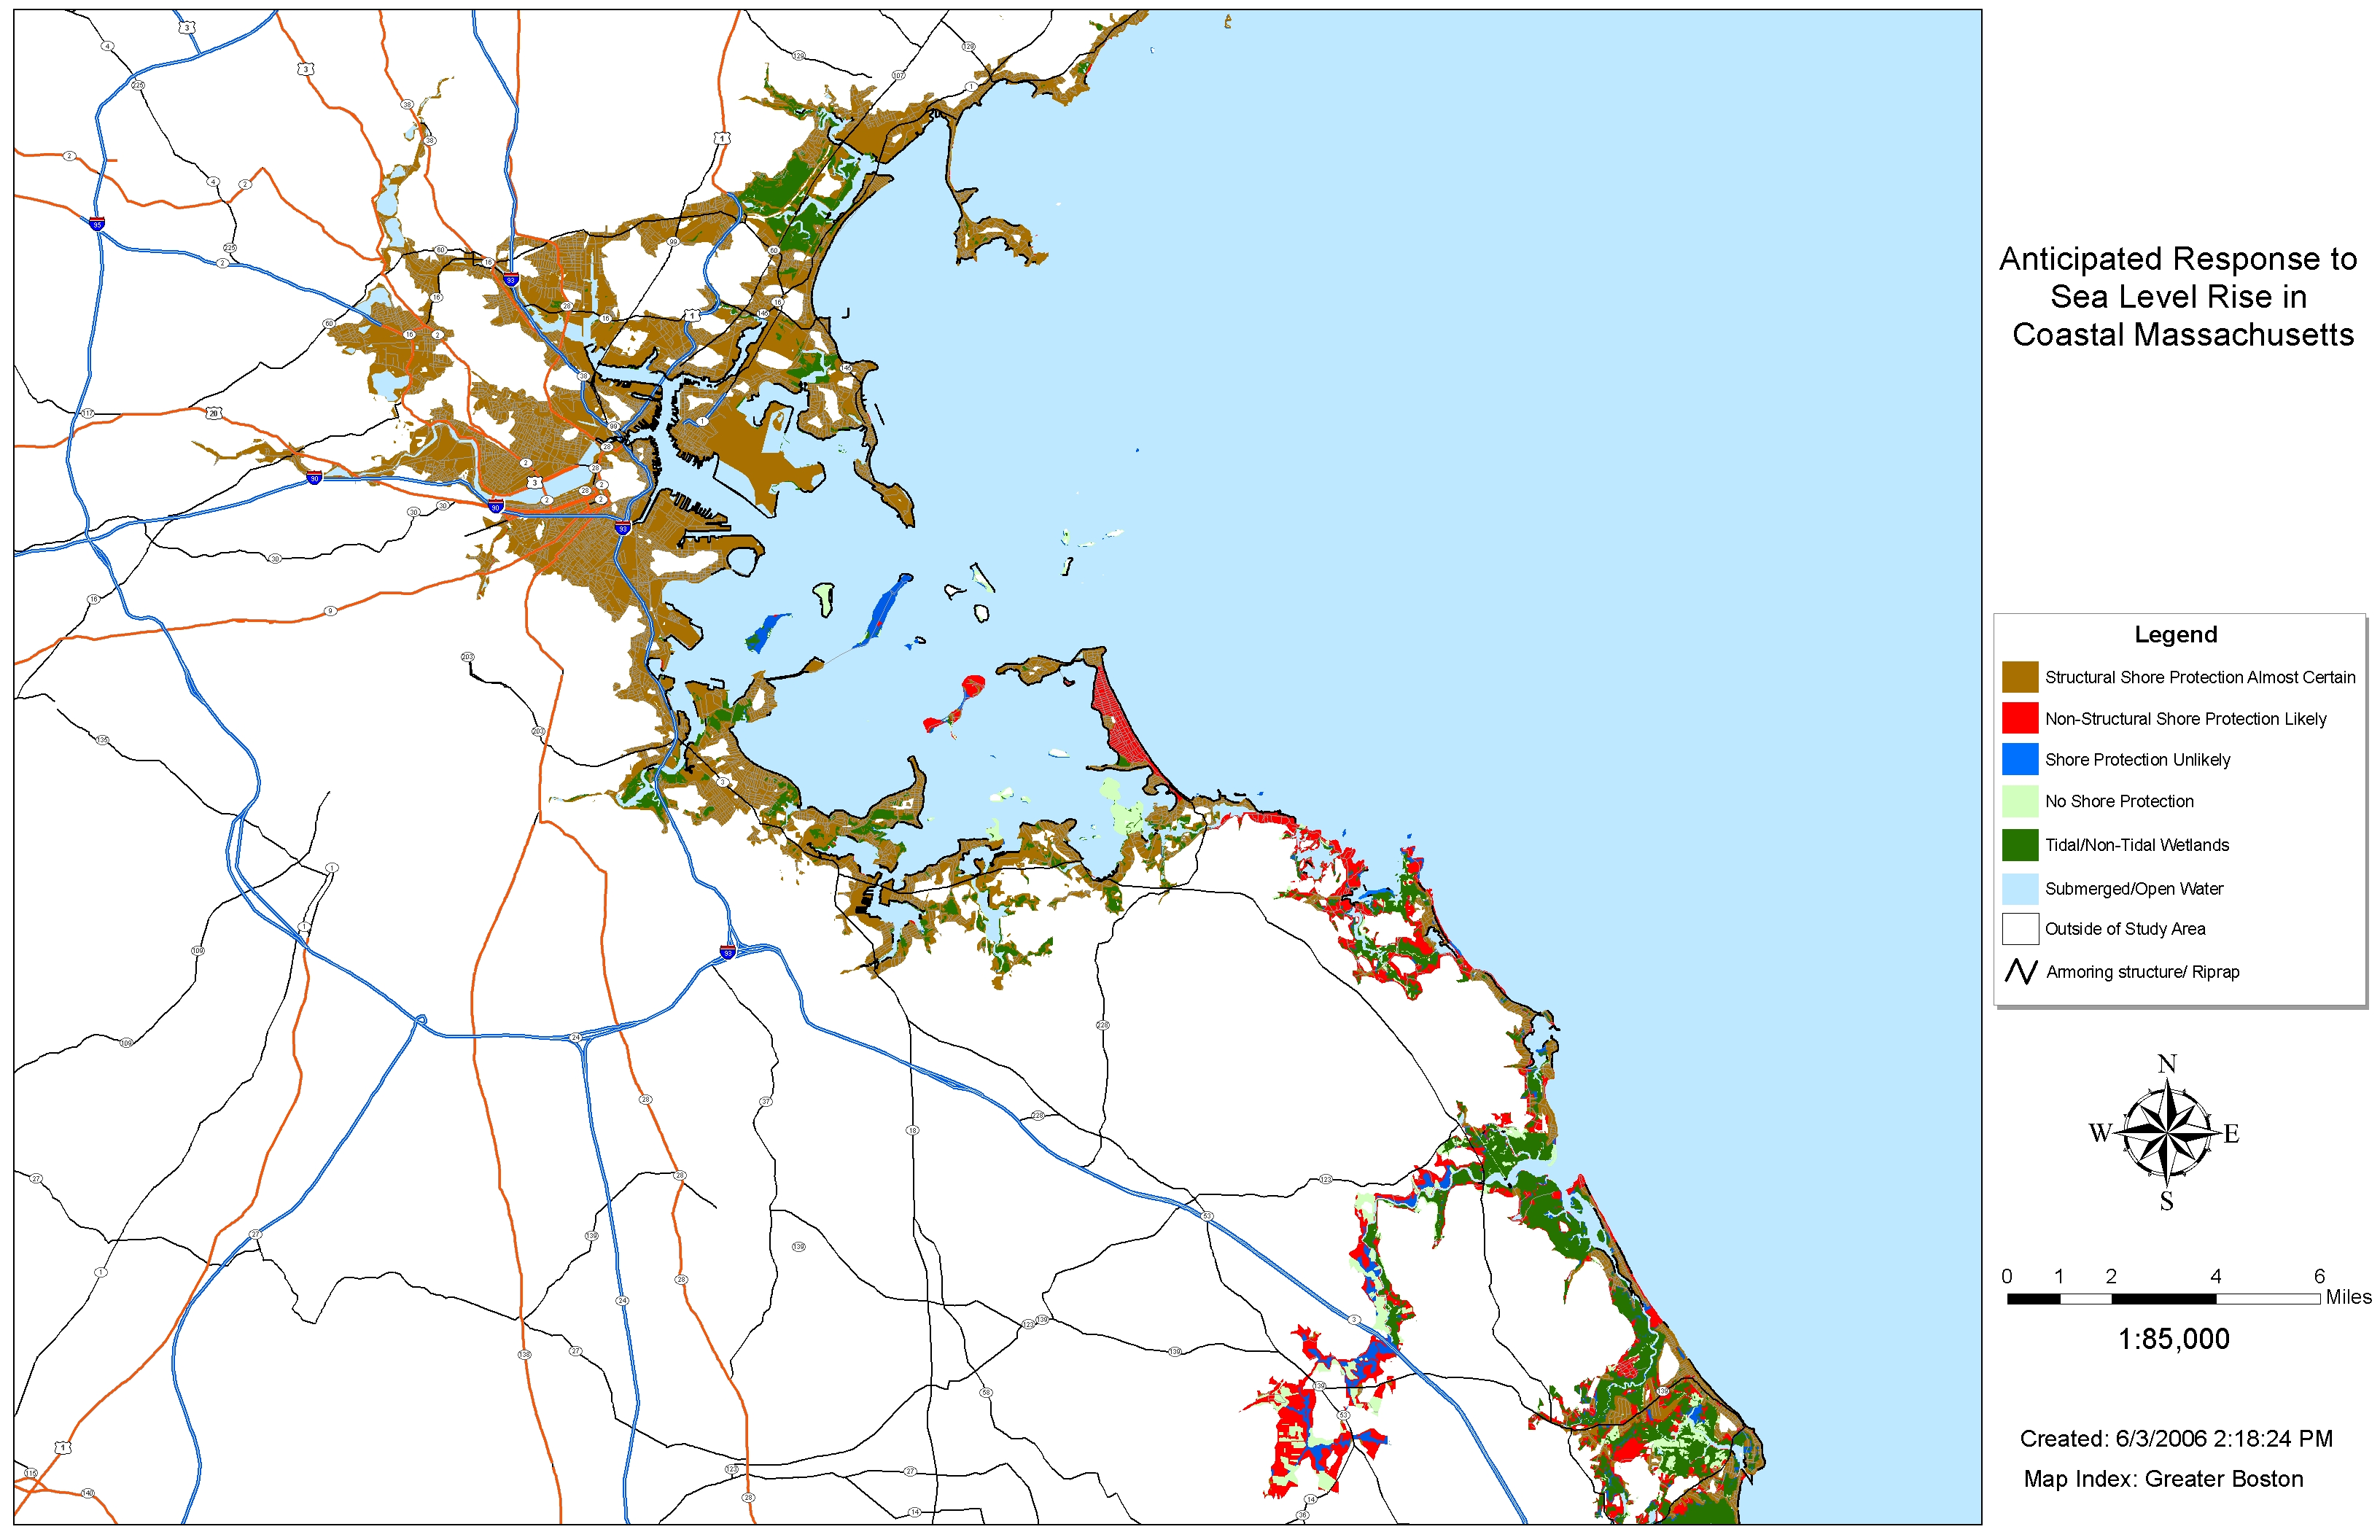 Sea Level Rise Planning Maps Likelihood Of Shore Protection In - Maps massachusetts